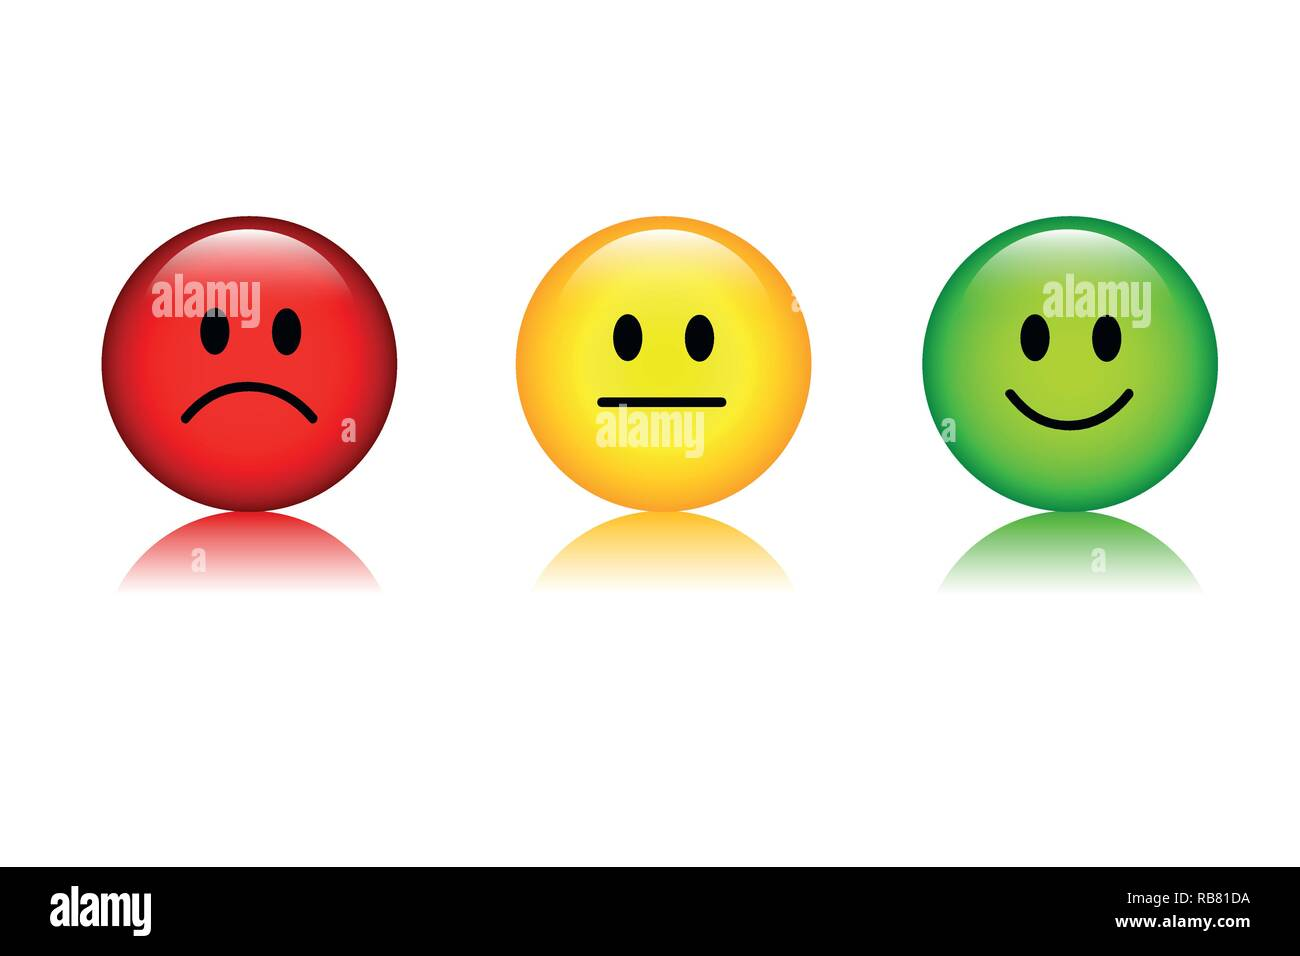 Green Smiley Face Stock Photos: Three Rating Smiley Faces Red To Green Icon Vector